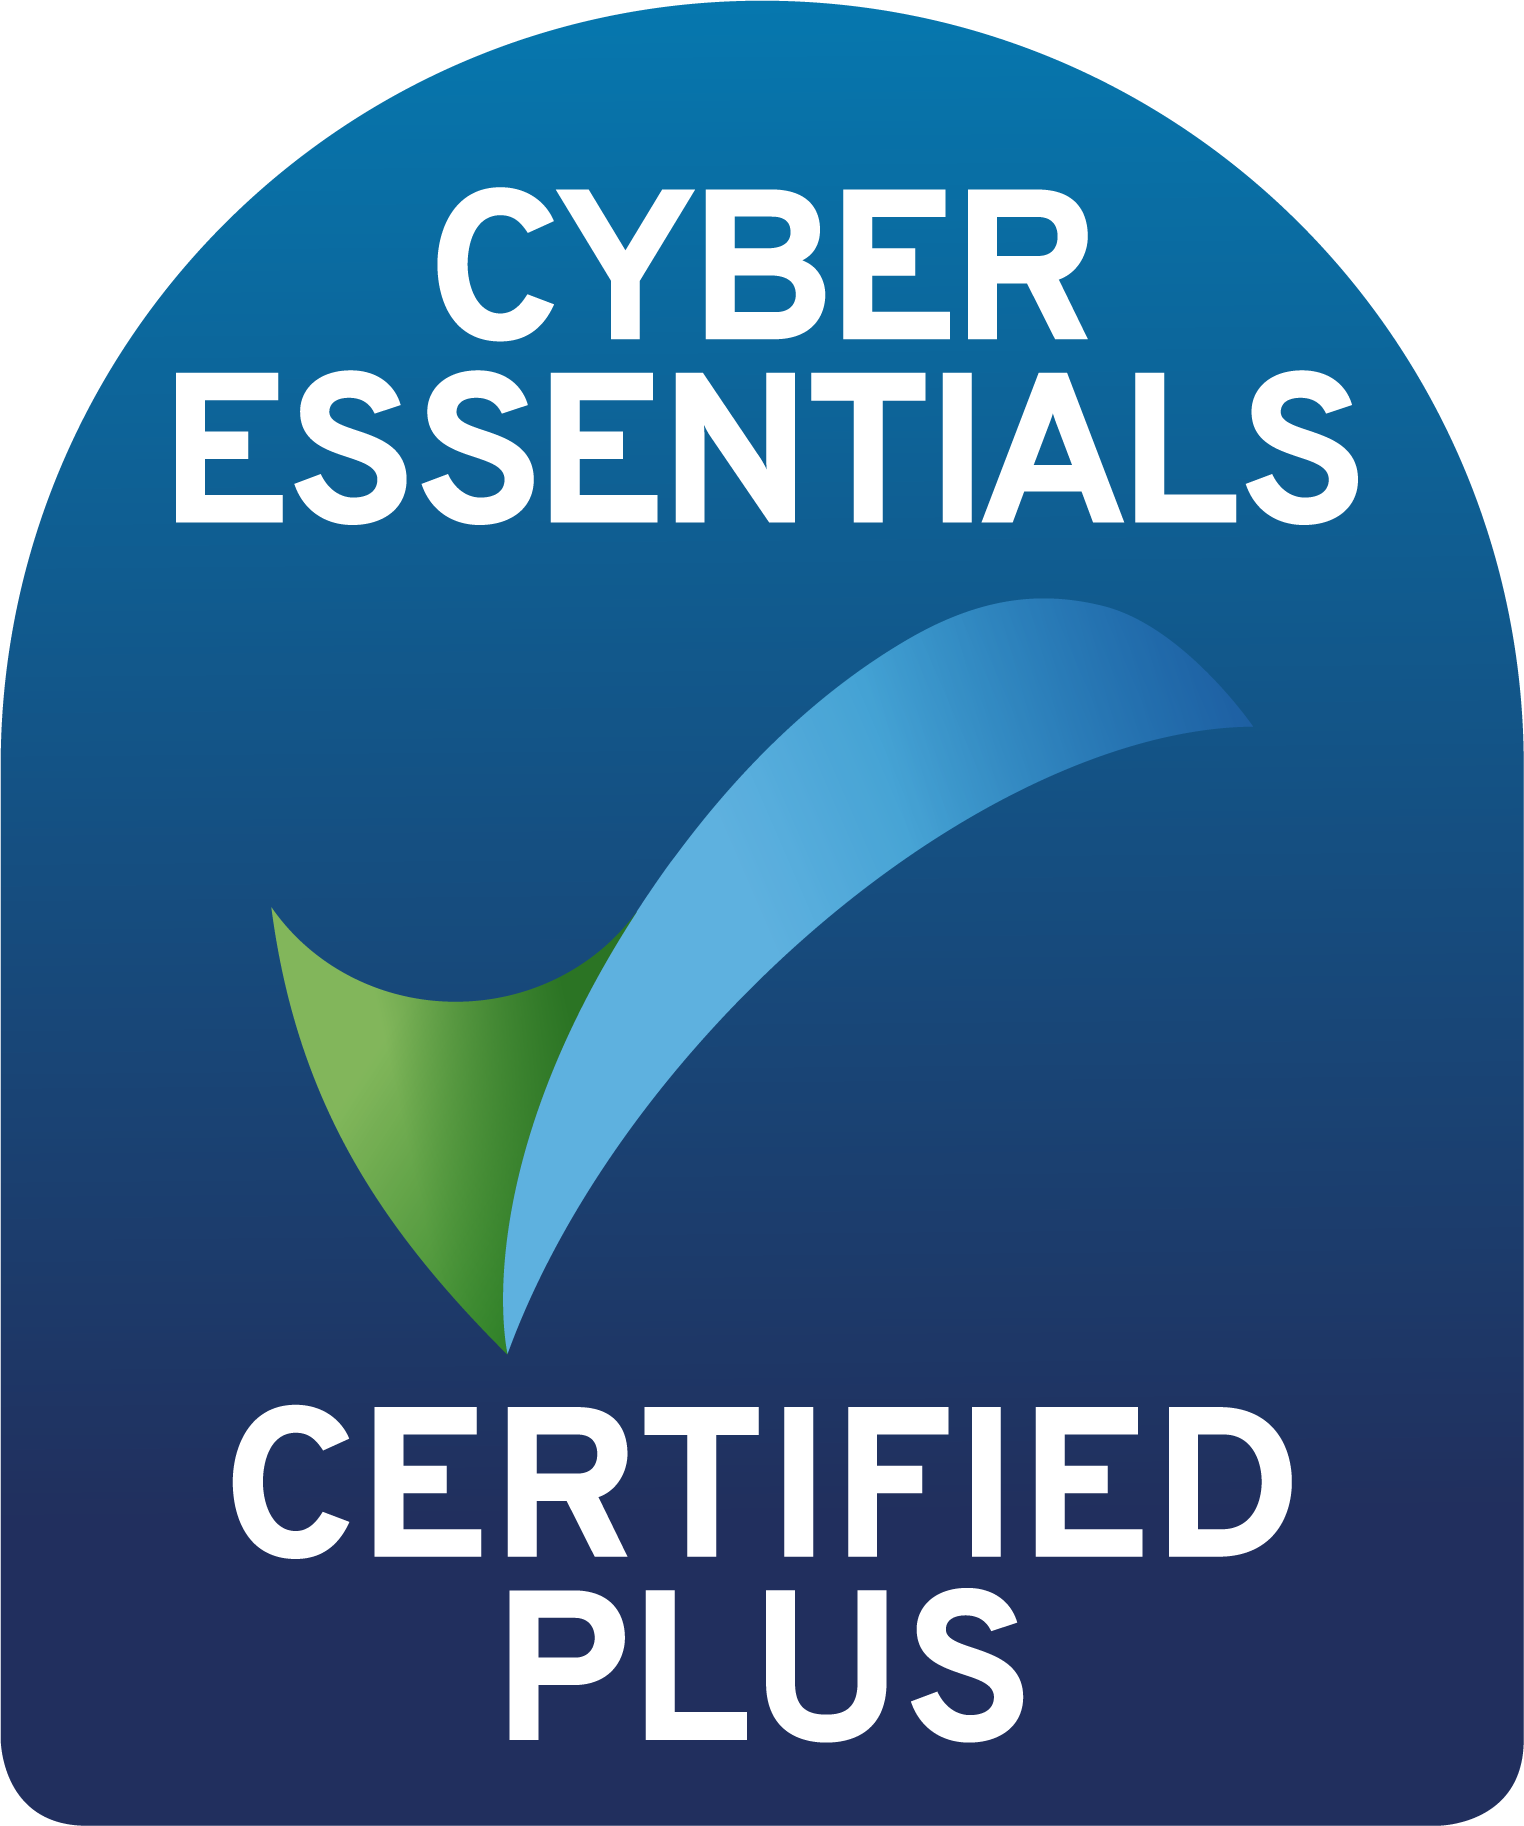 Cyberessentials certification mark plus colour